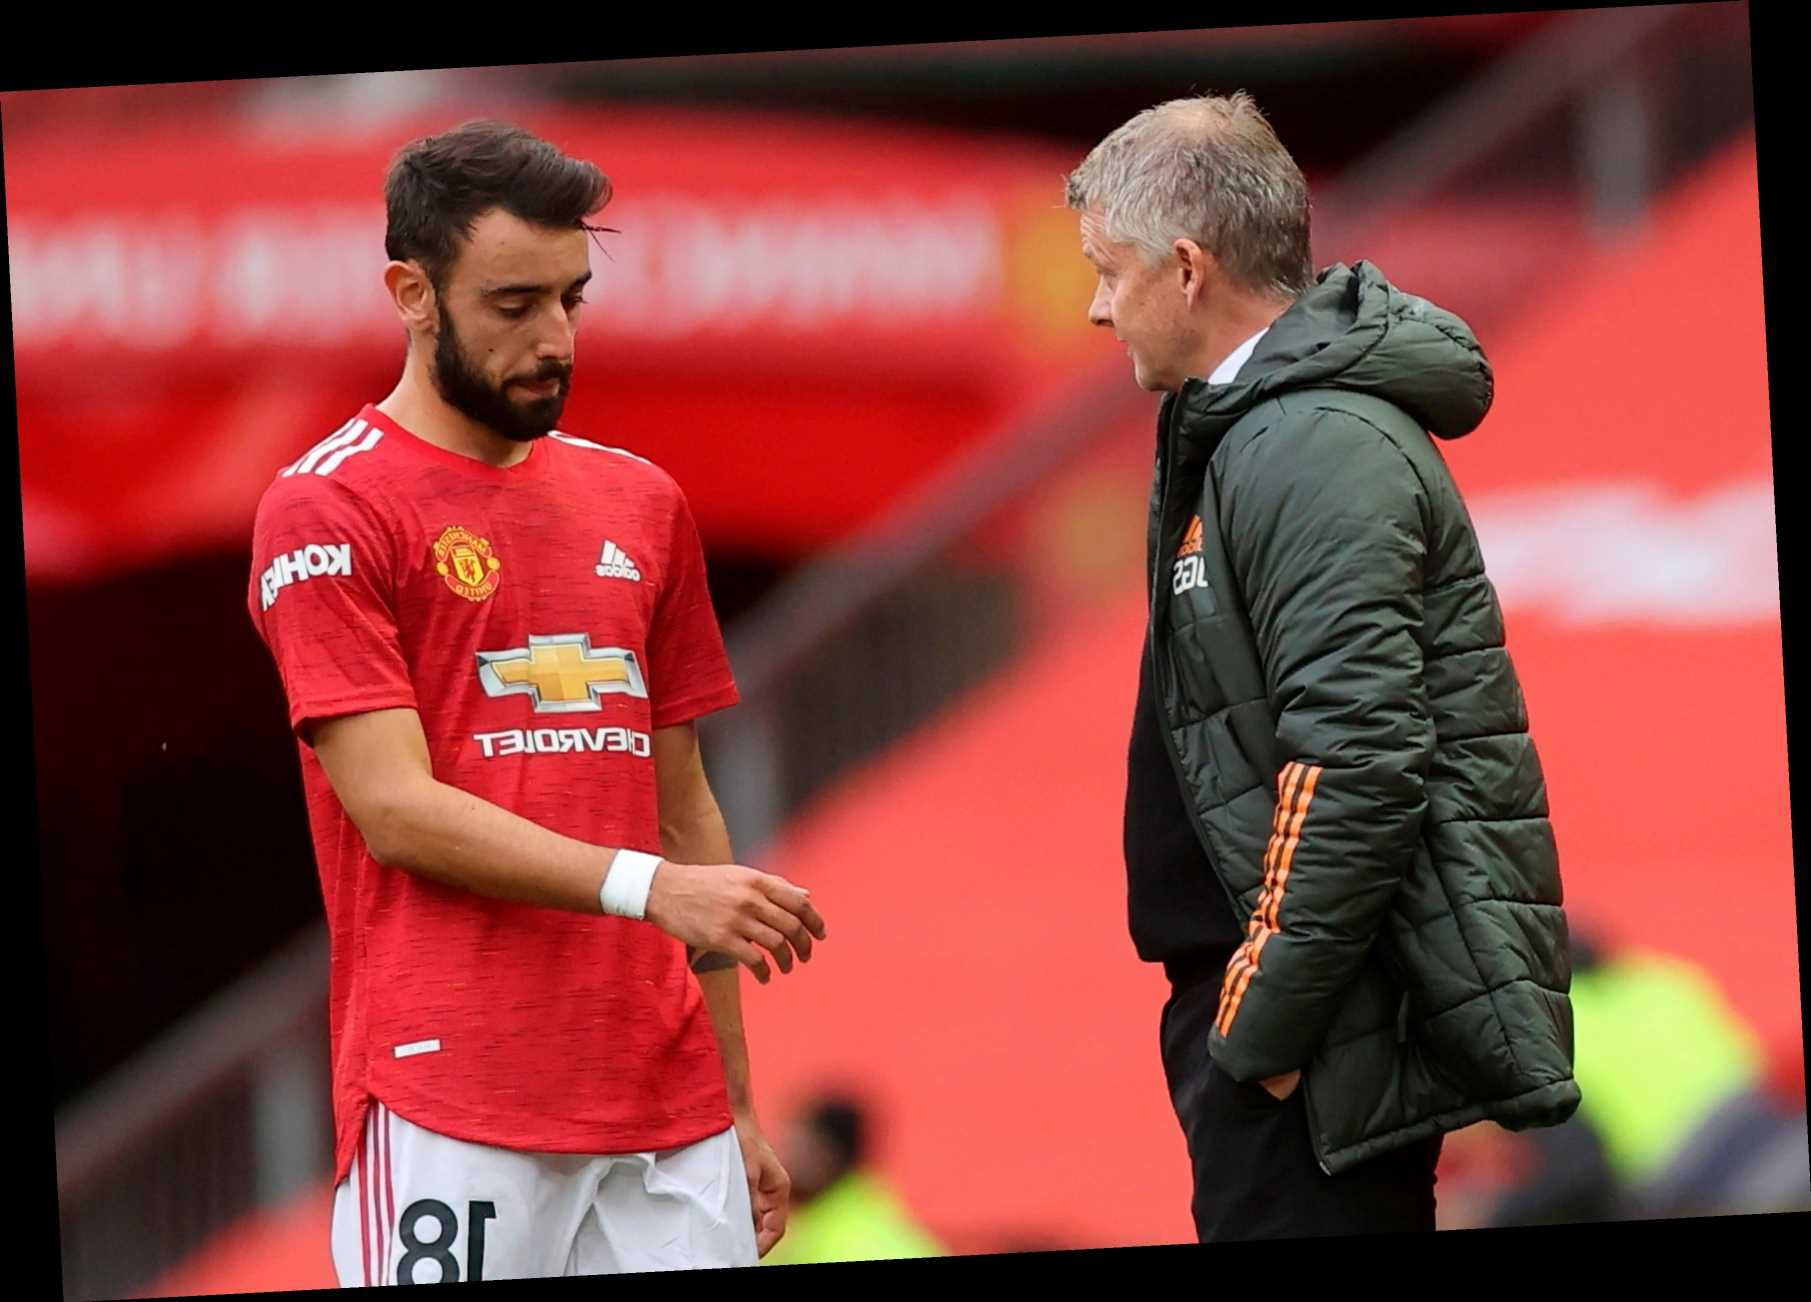 Man Utd boss Ole Gunnar Solskjaer says more of his players need to step up… not just Bruno Fernandes